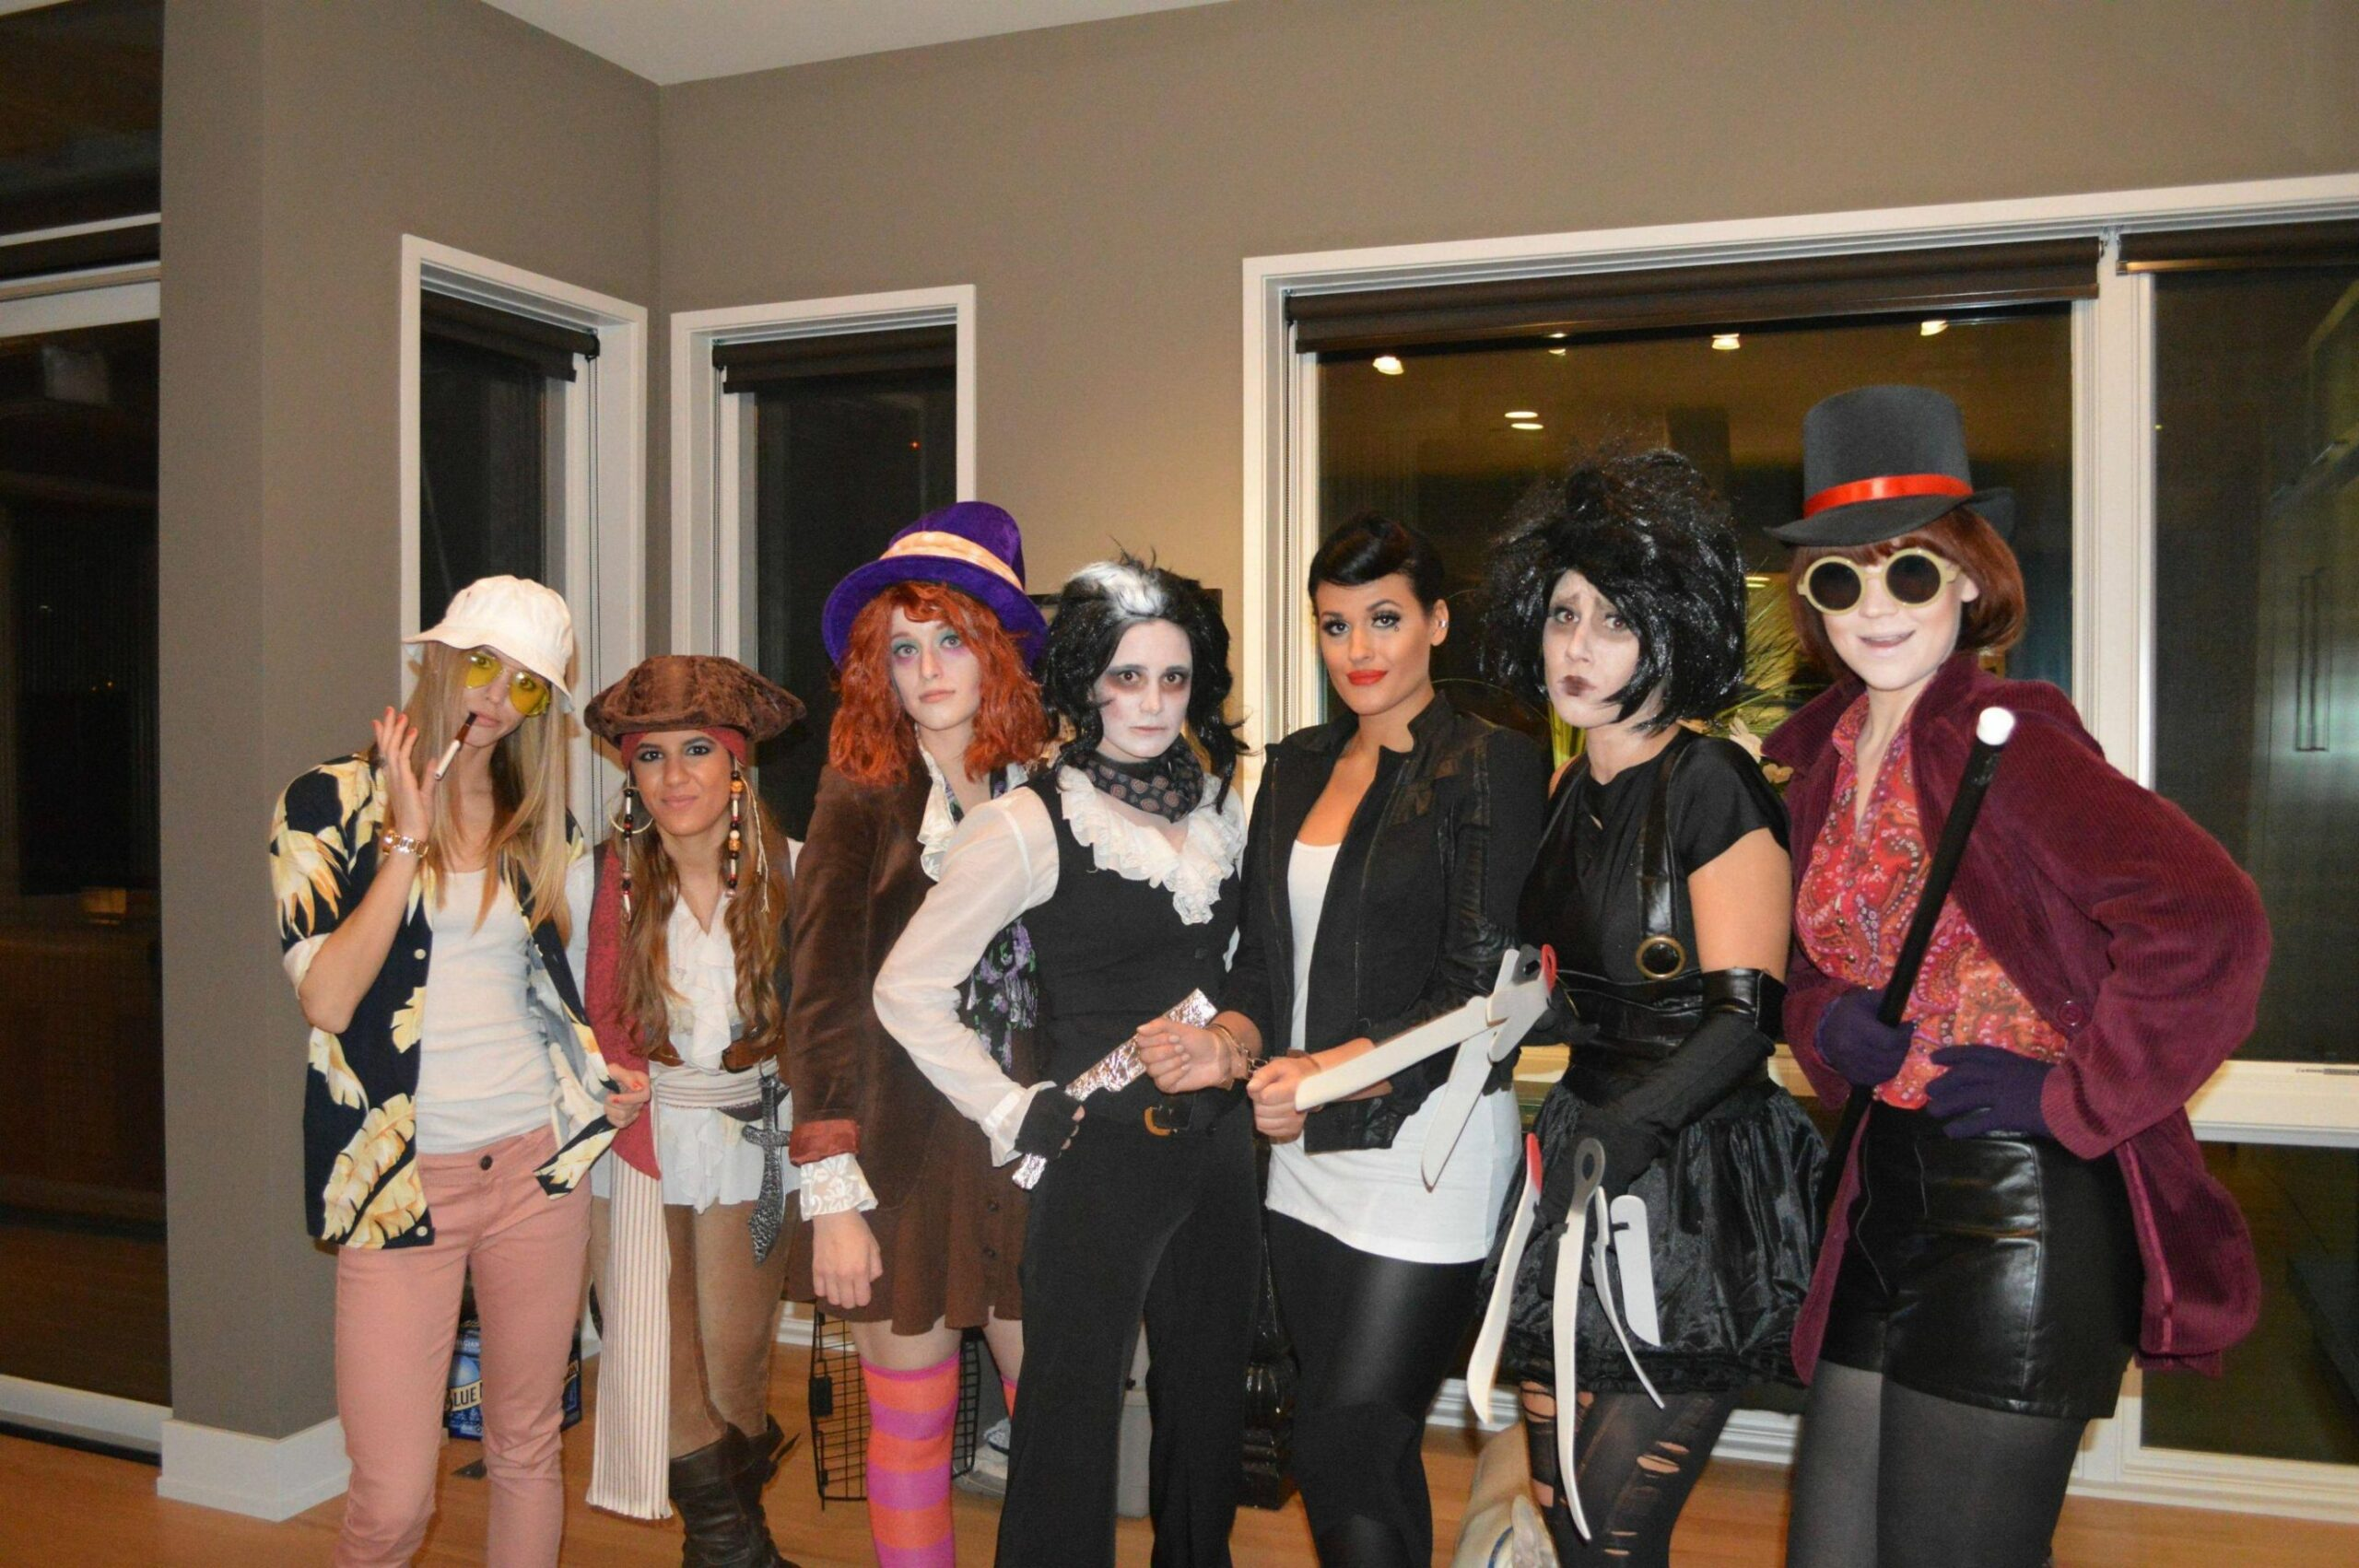 All-time 8+ Best Halloween Group Costume Ideas ⋆ BrassLook - halloween ideas no one thinks of